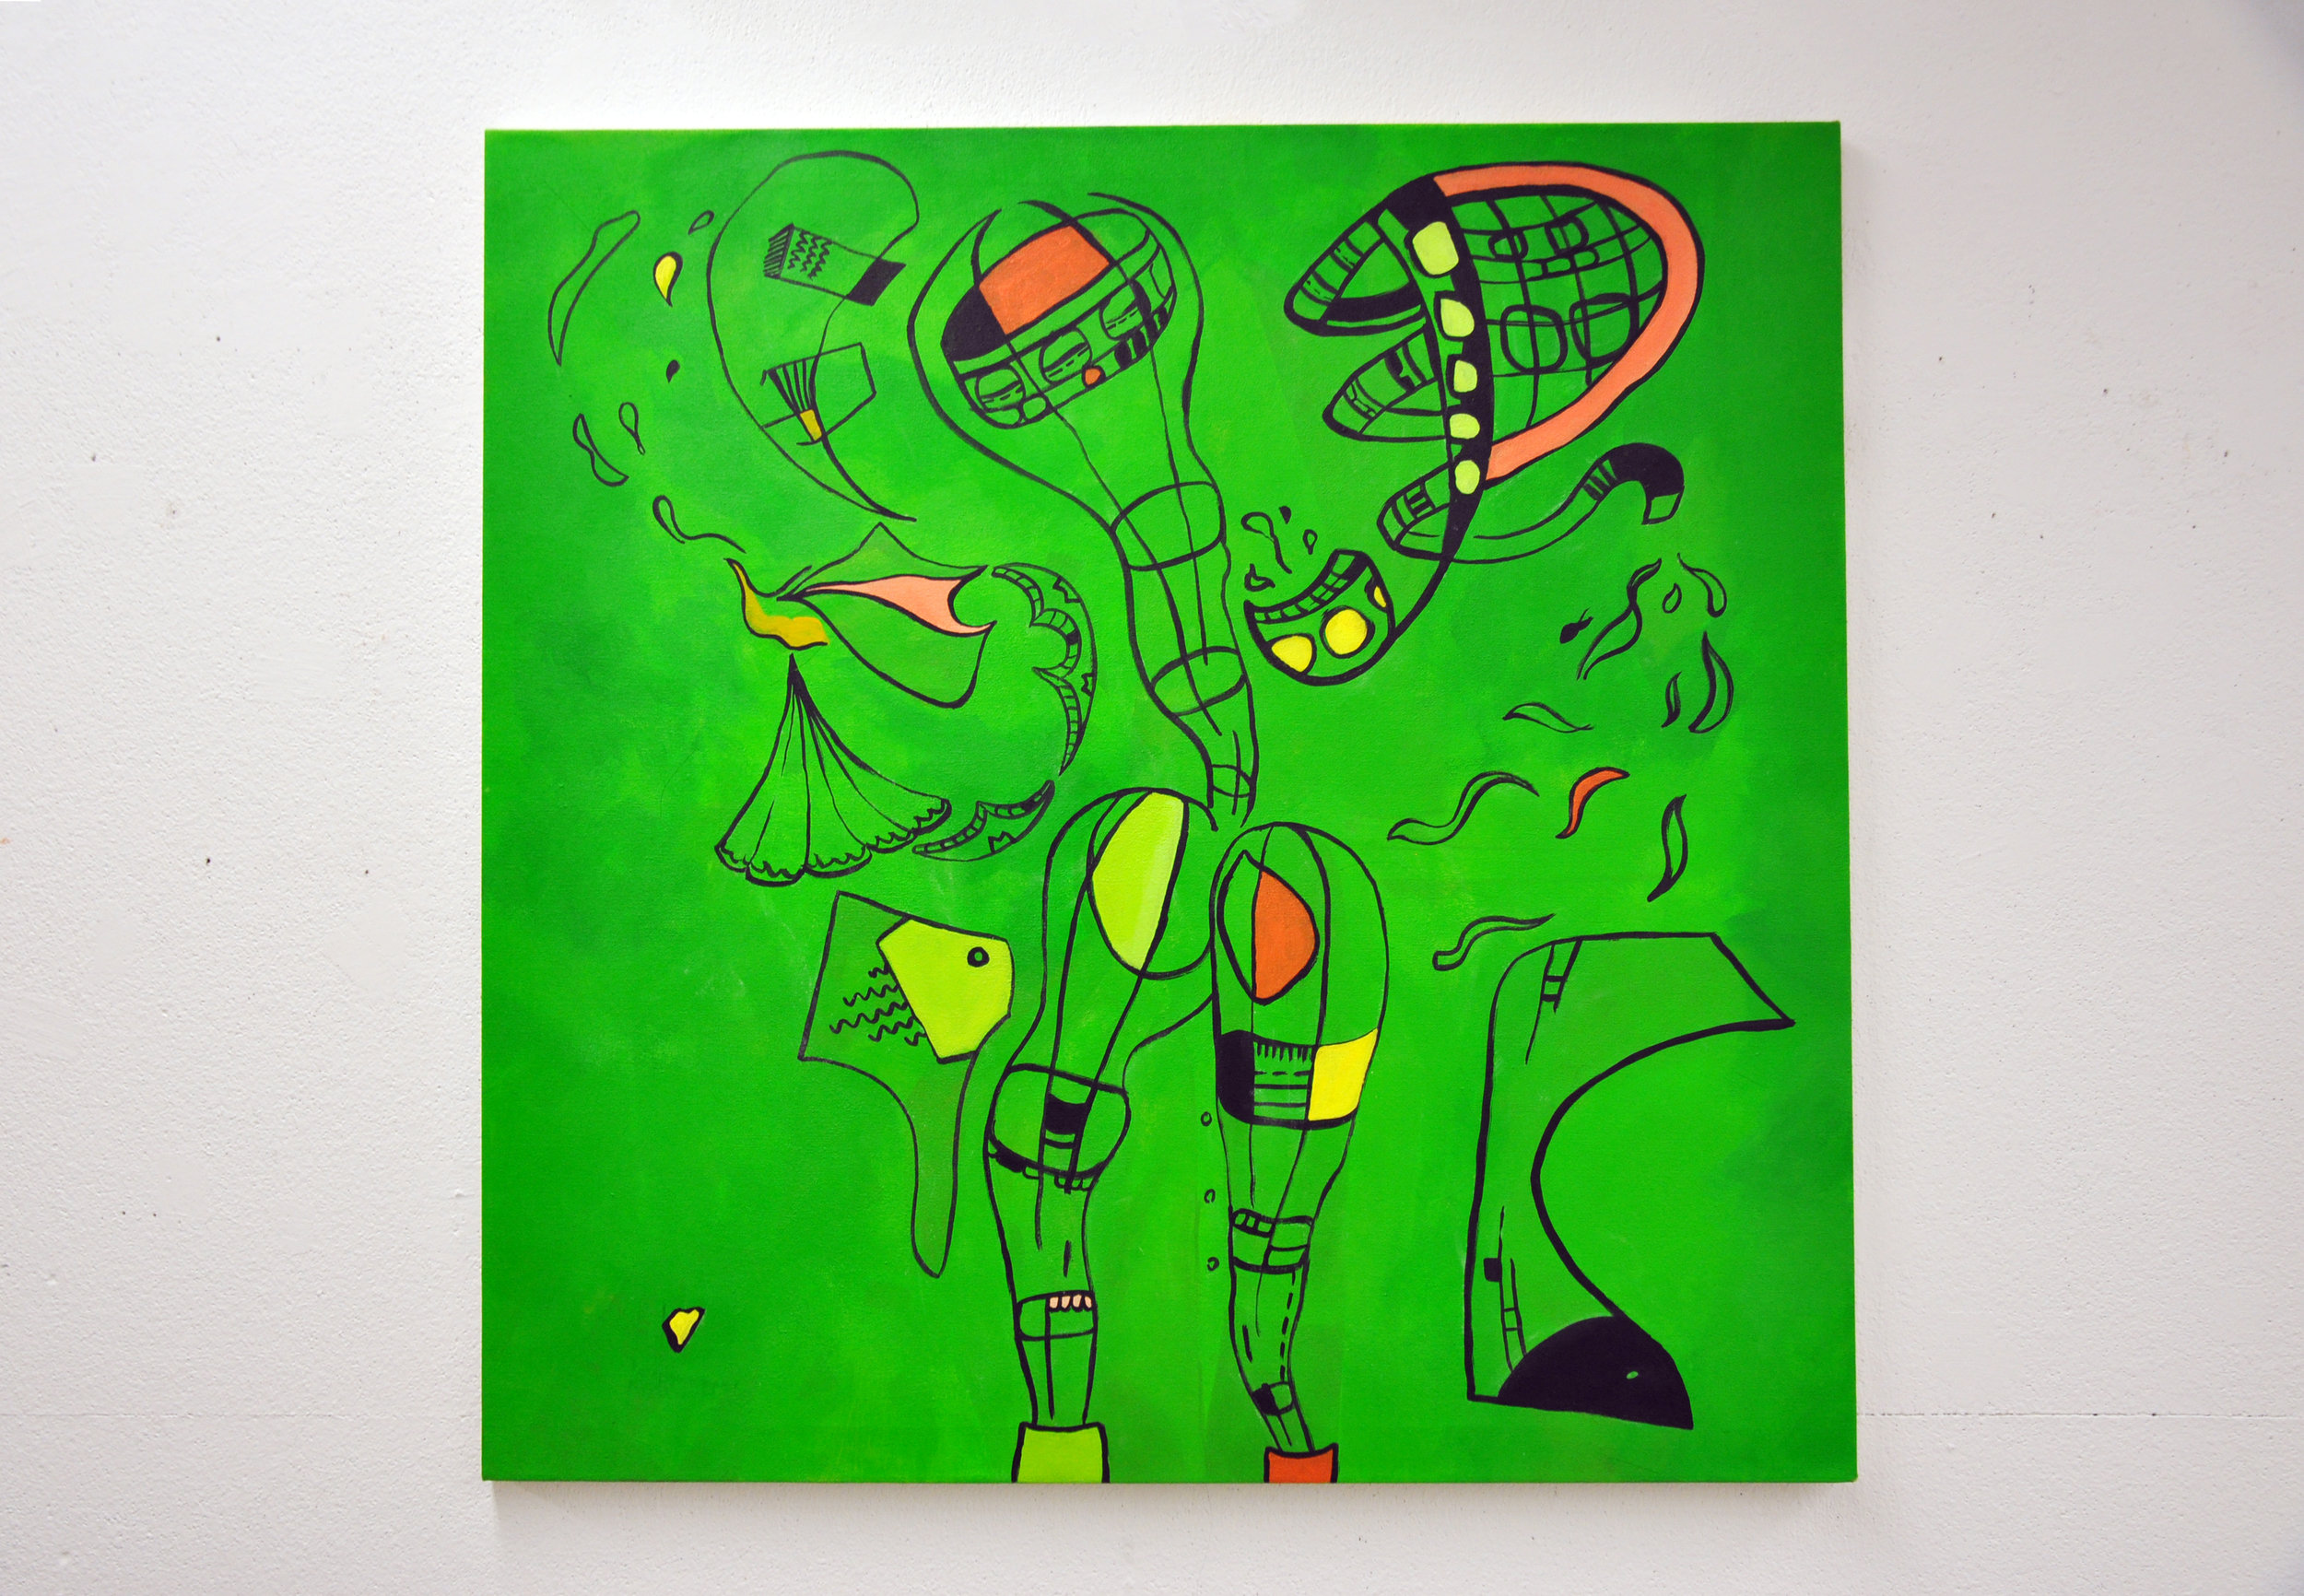 003 - Instantaneous3 ft. x 3 ft.Acrylic on CanvasNovember 2014